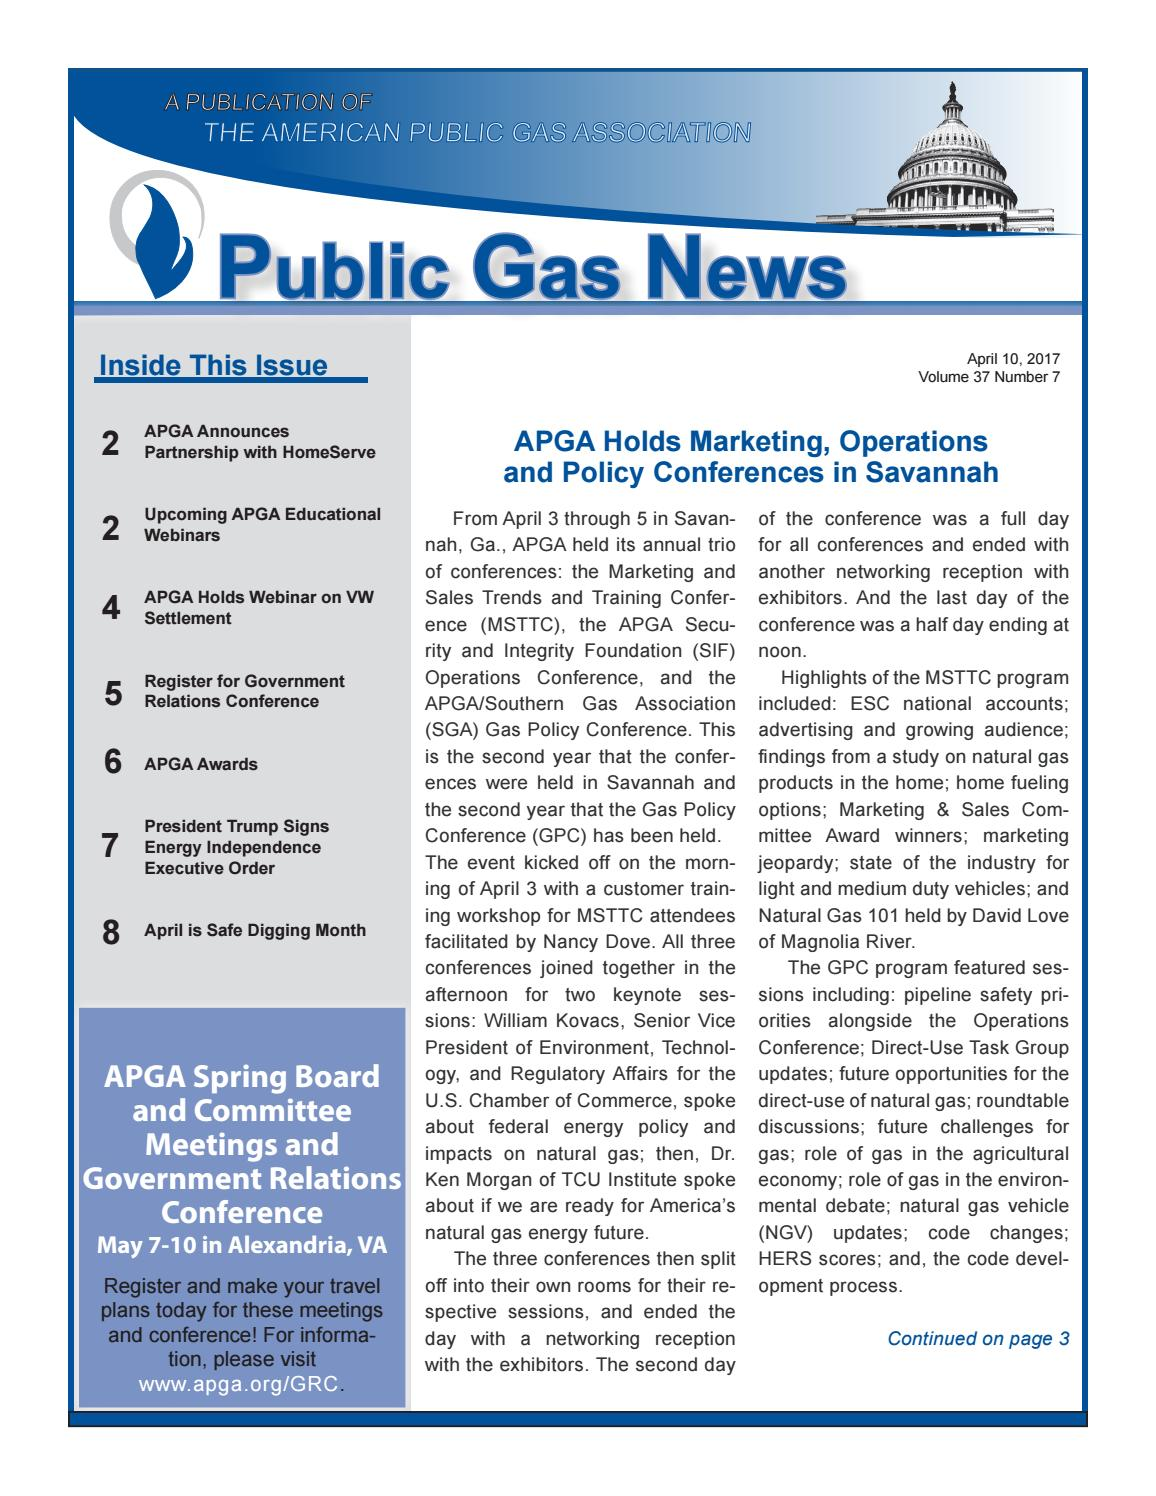 Free Civil Rights Webinar At 3pm 927 >> Public Gas News By American Public Gas Association Issuu